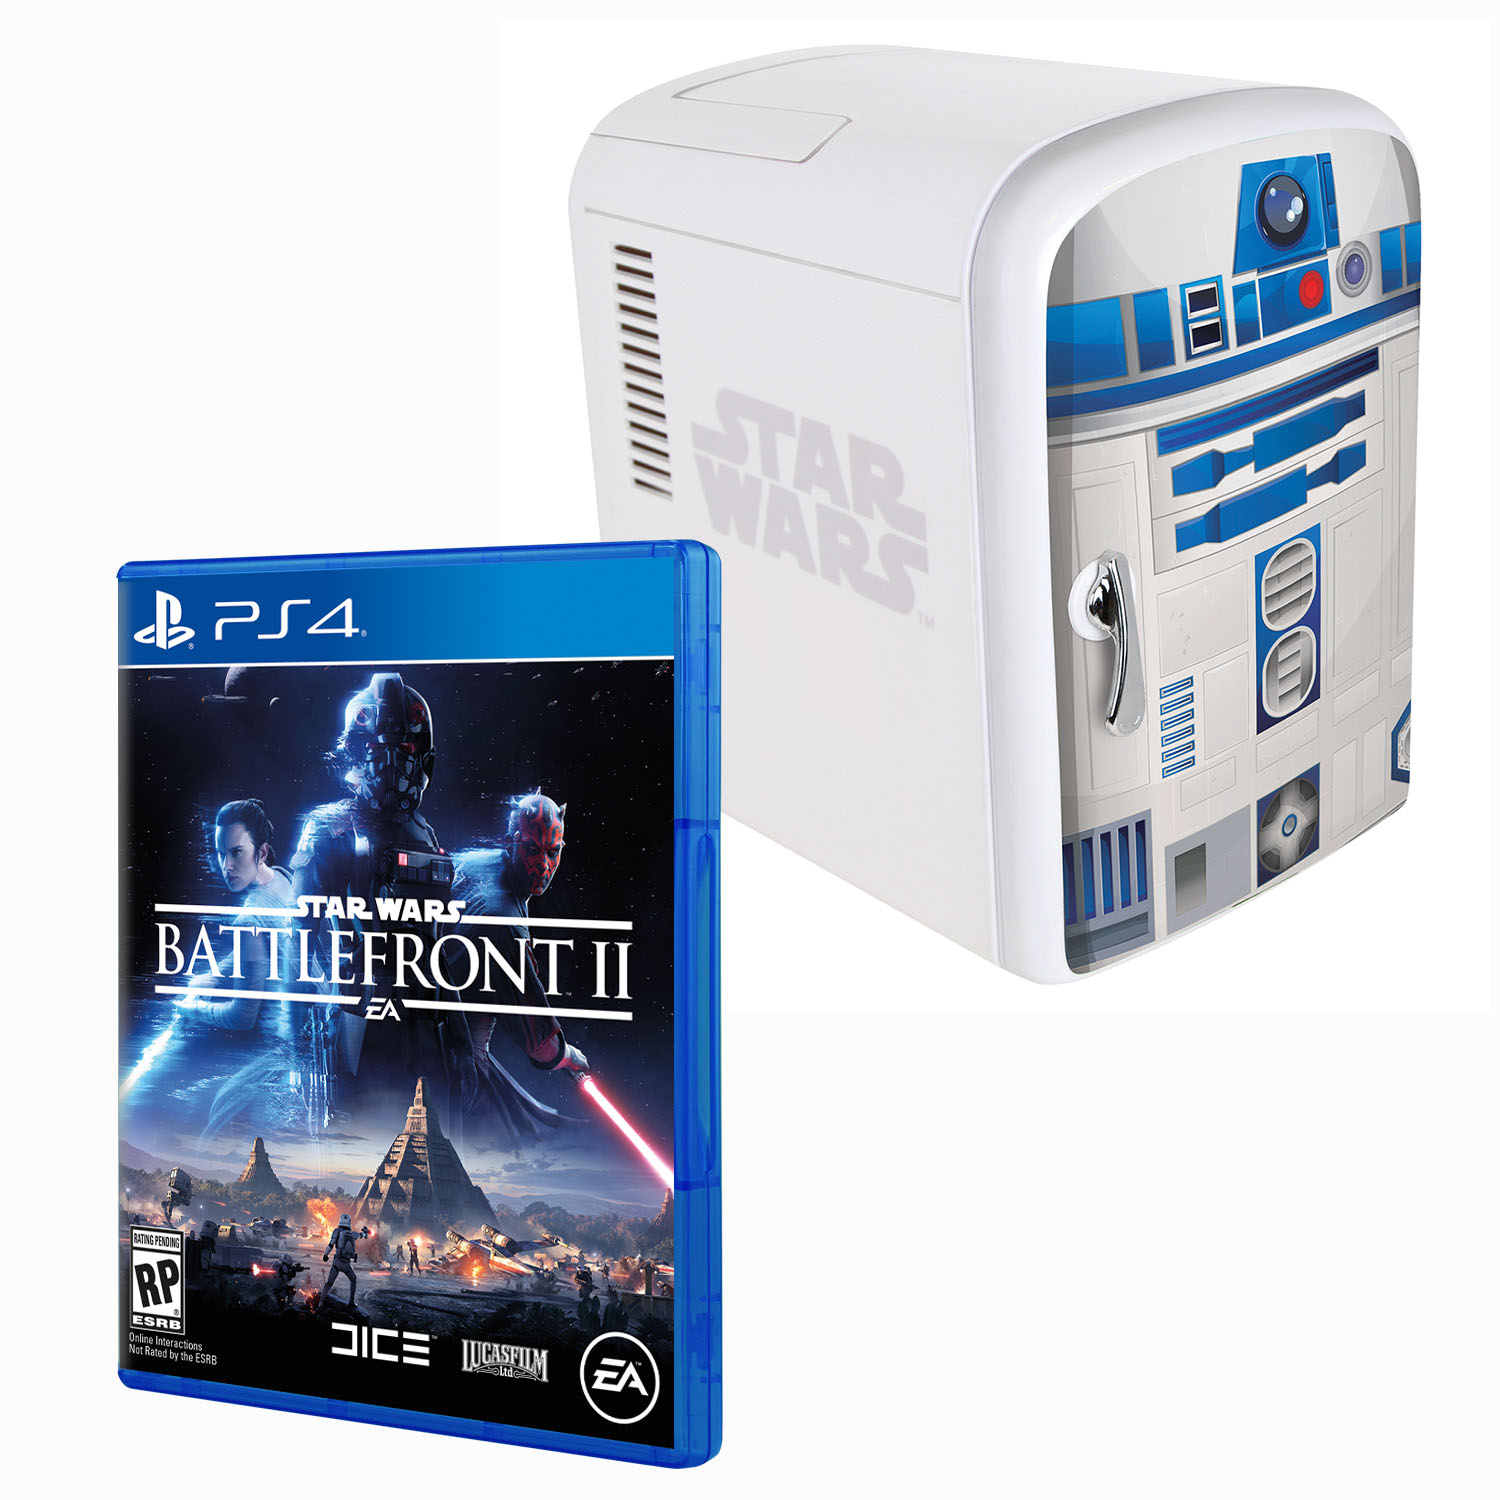 Battlefront 2 PS4 R2D2 Fridge Bundle(PS4)